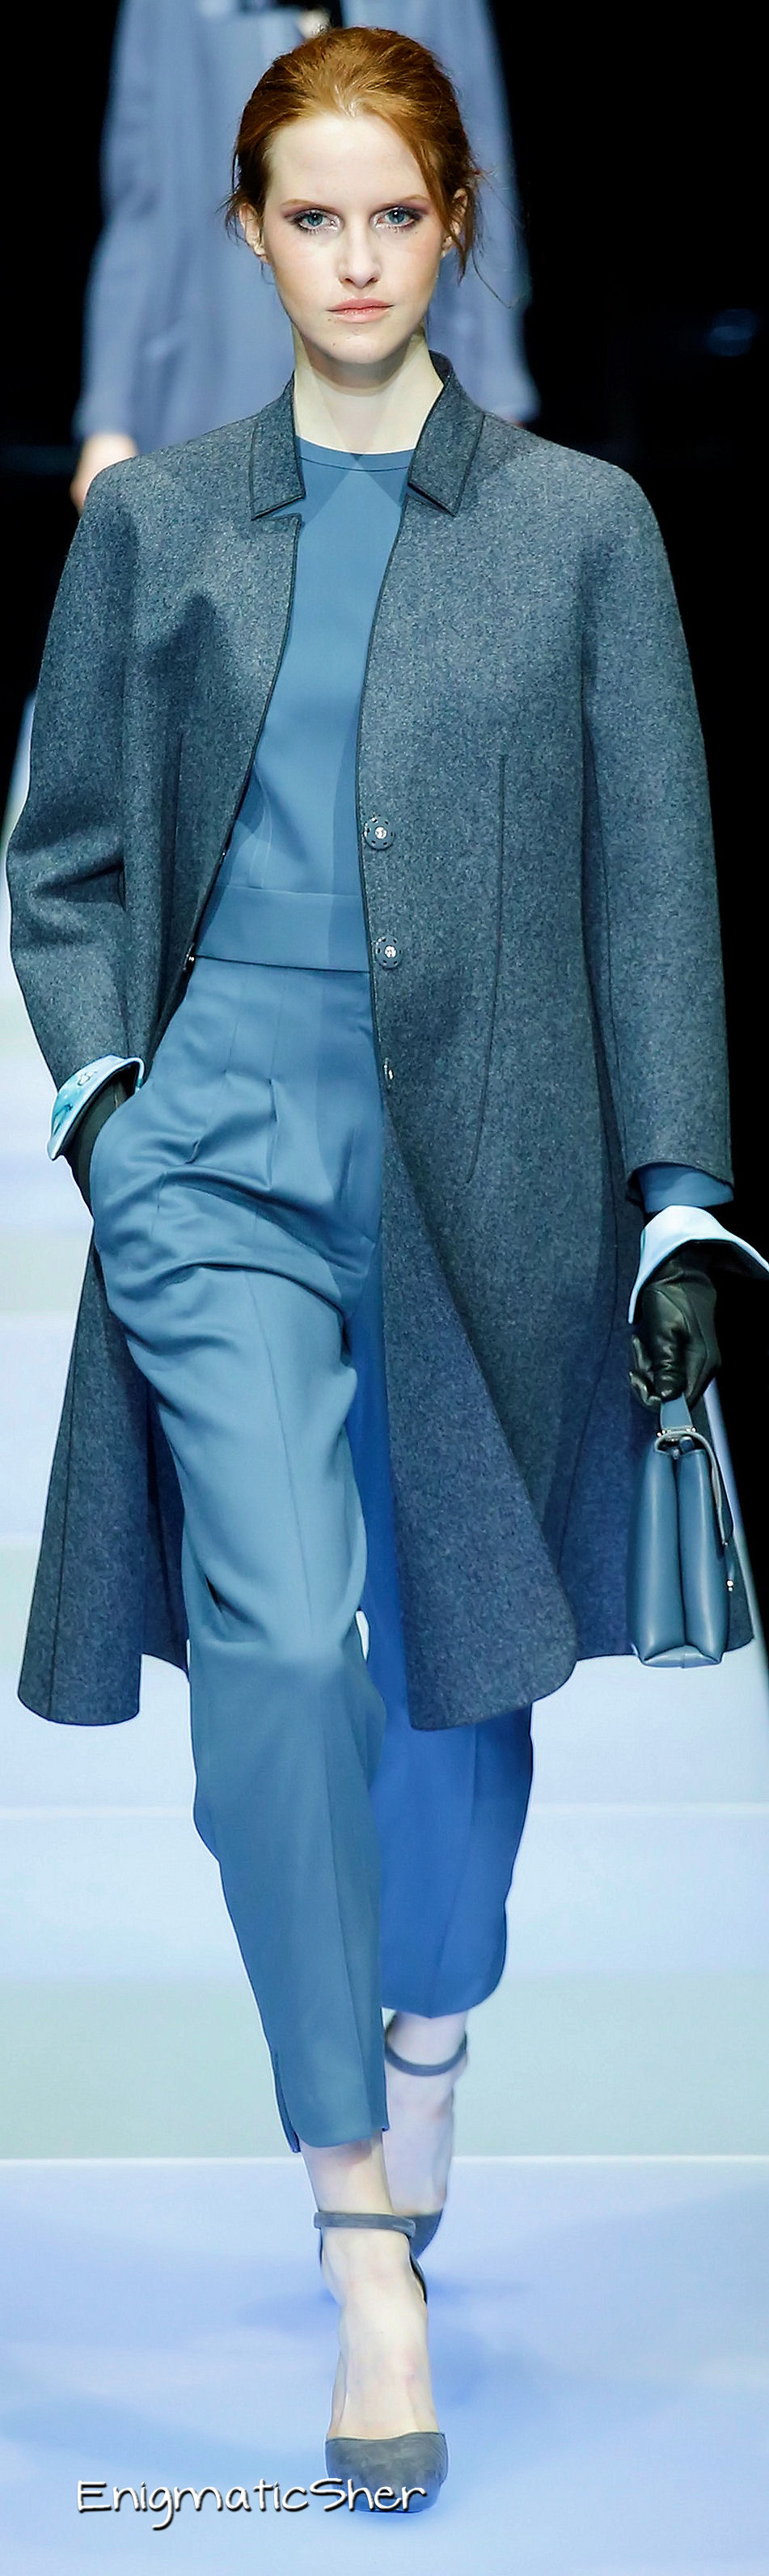 Diller-yourself Stil- und Imageberatung GIORGIO ARMANI Winter 2016 Ready-To-Wear